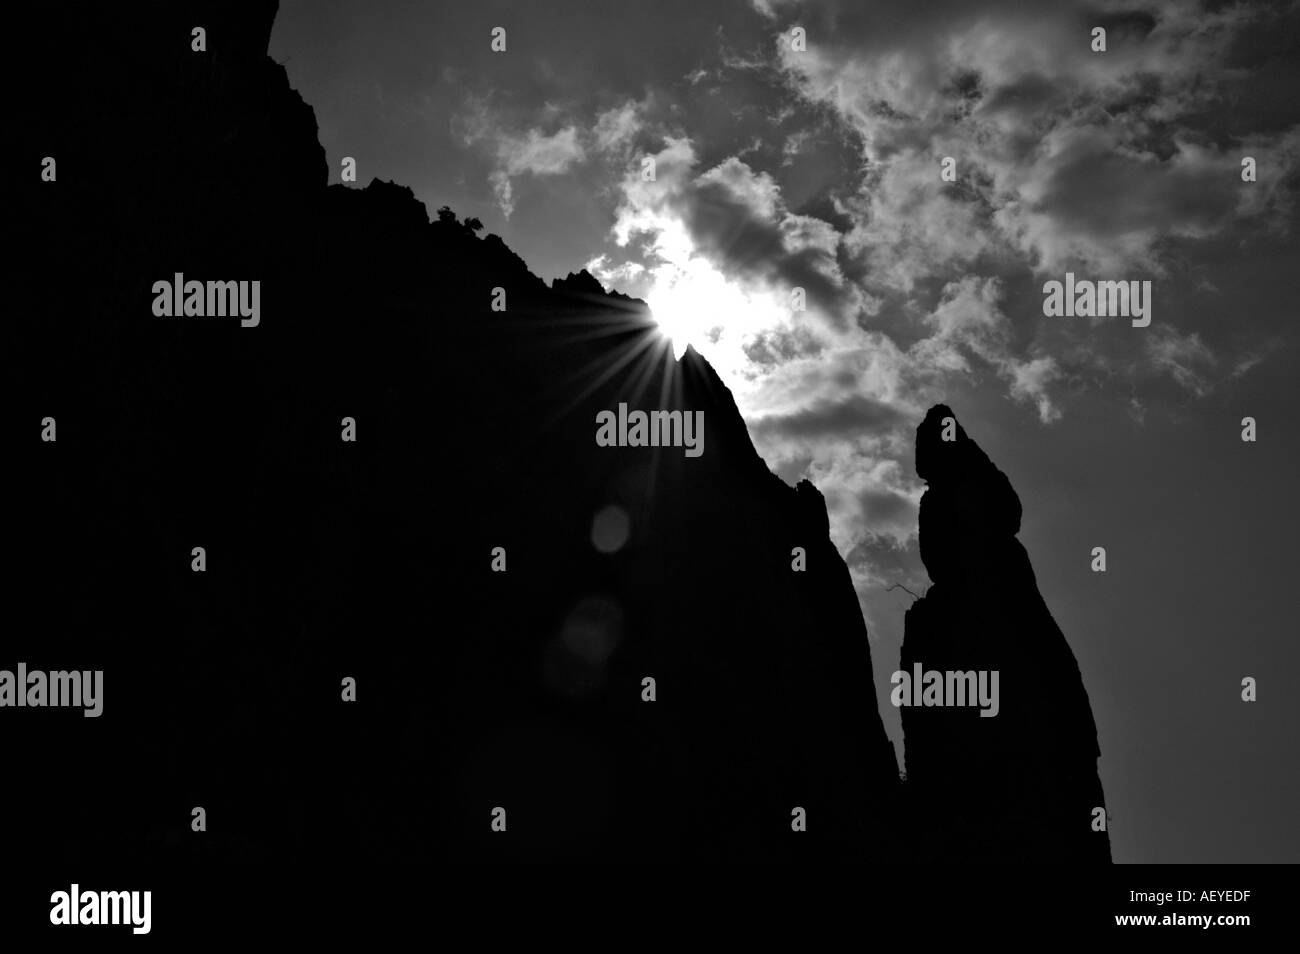 Silhouette of monolith in Stone Forest China - Stock Image